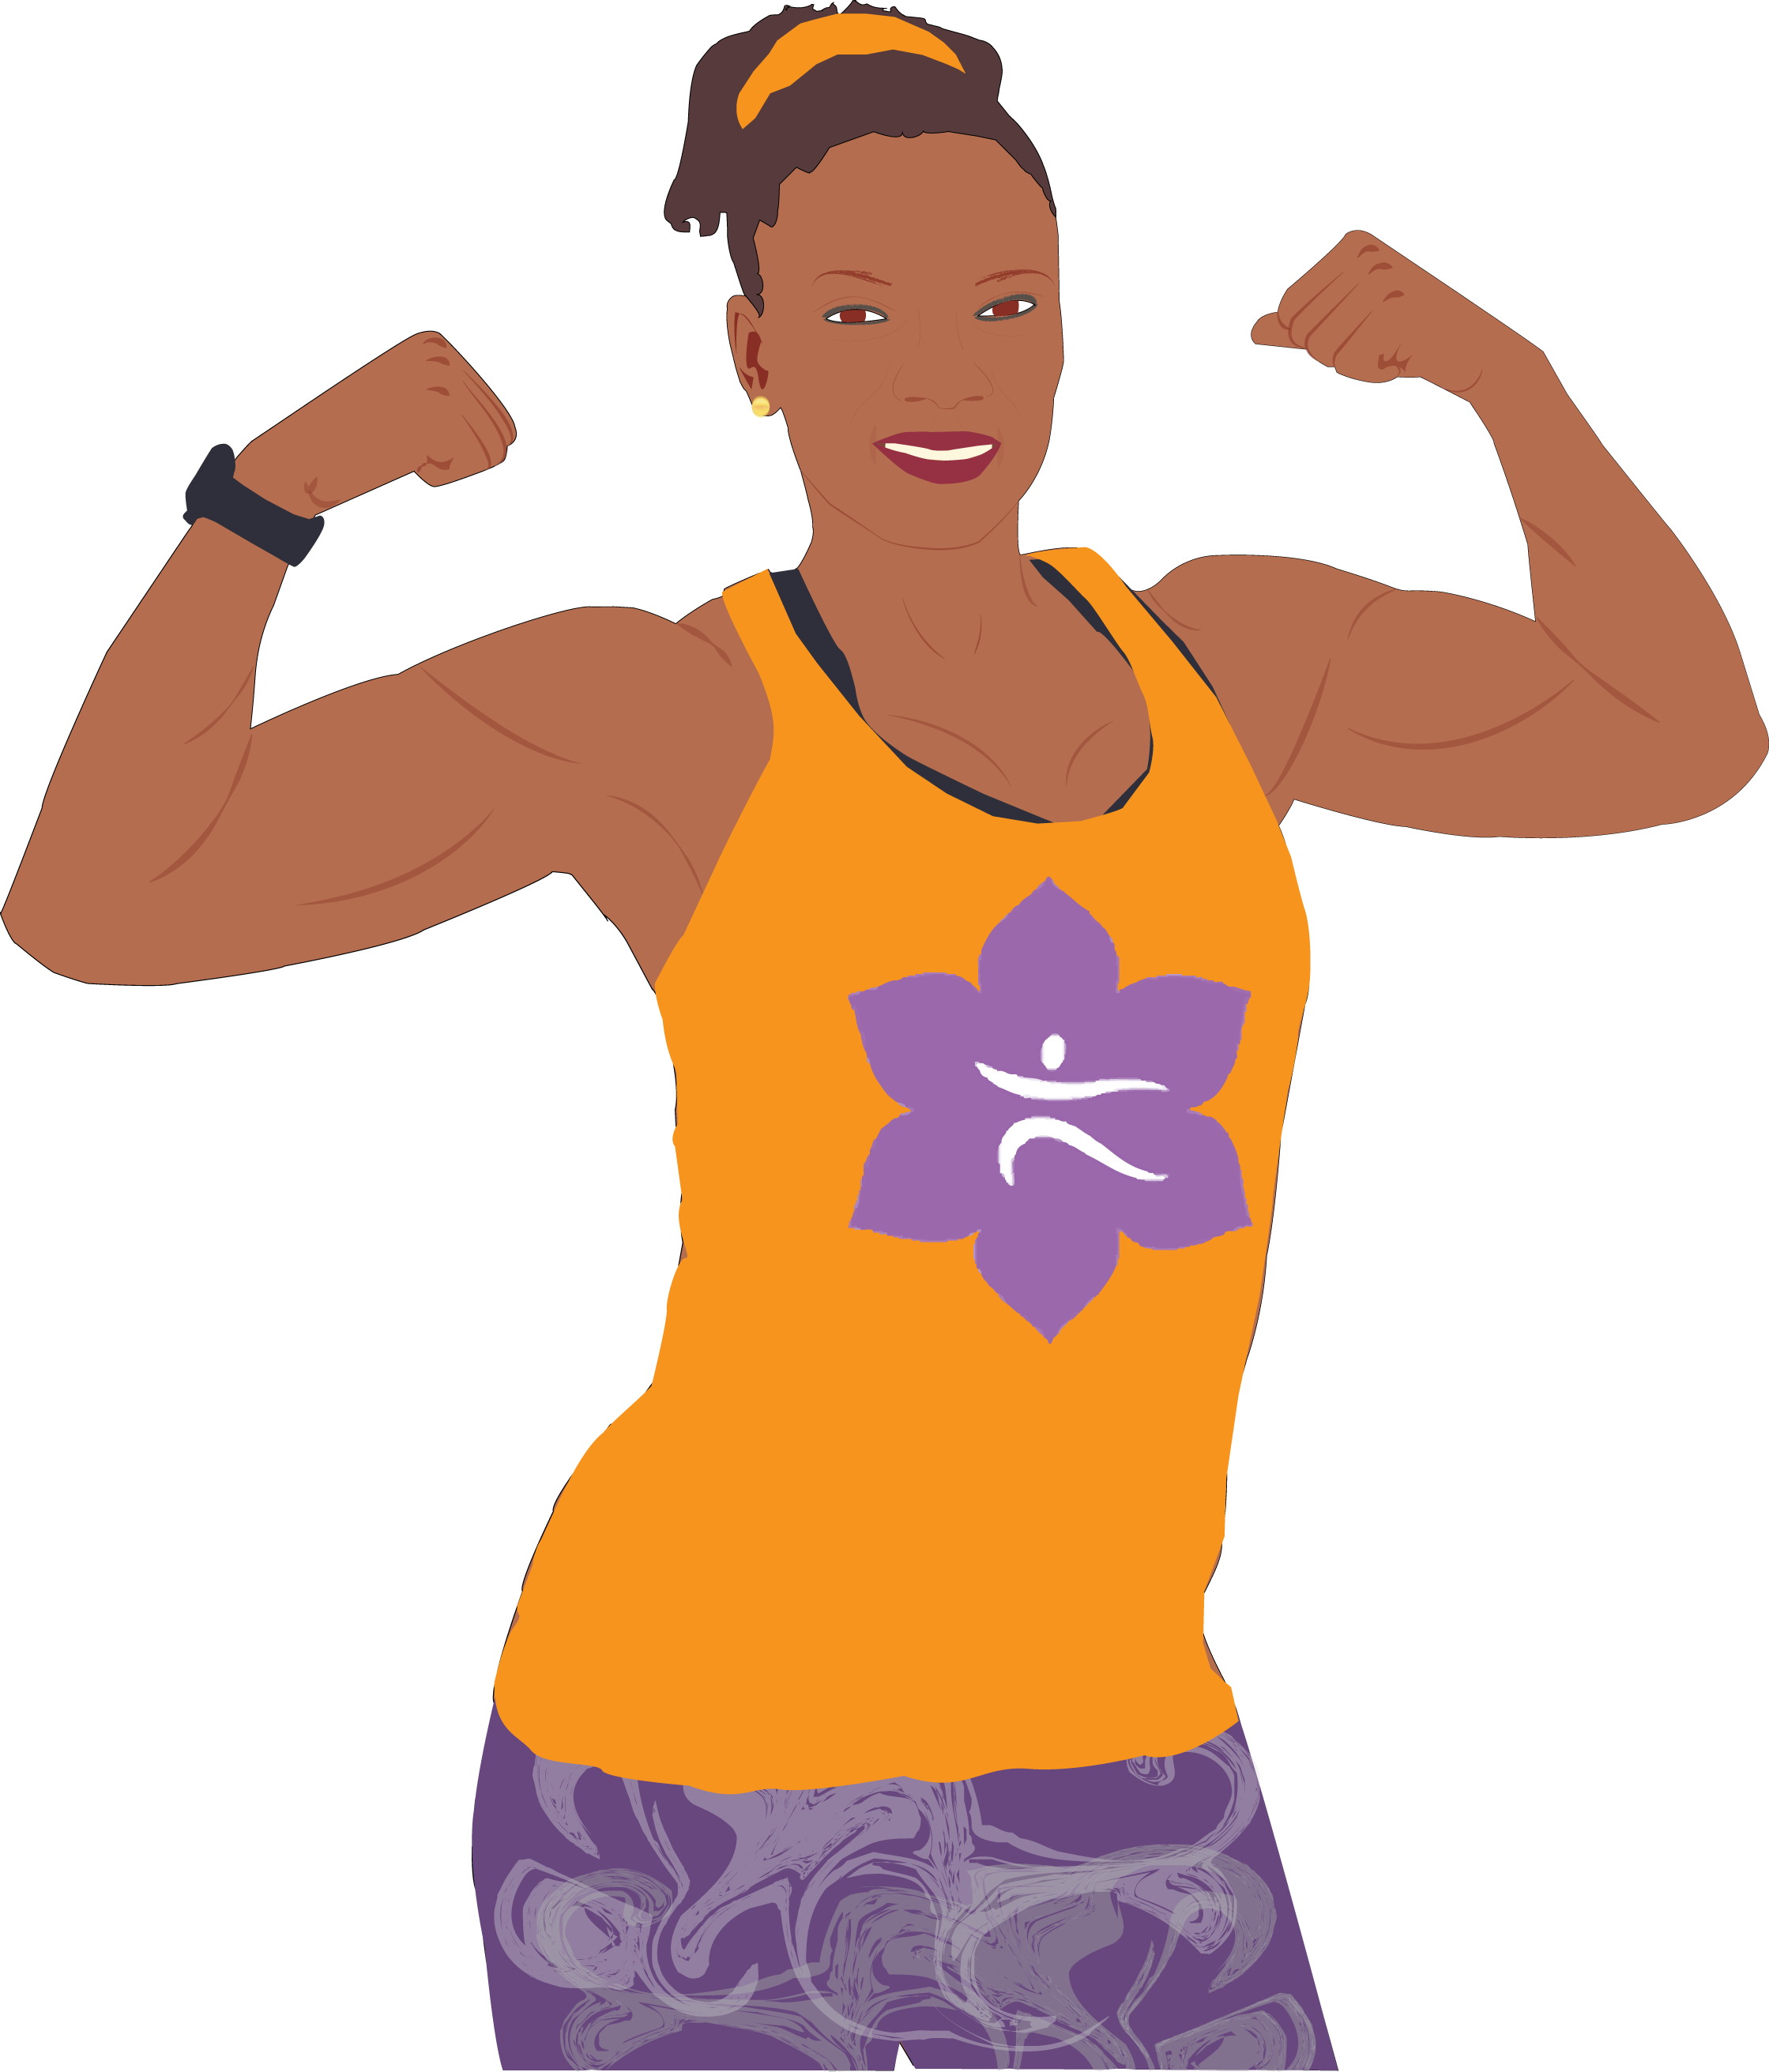 Exercise clipart morning exercise. Benefits of fitness lifestyle